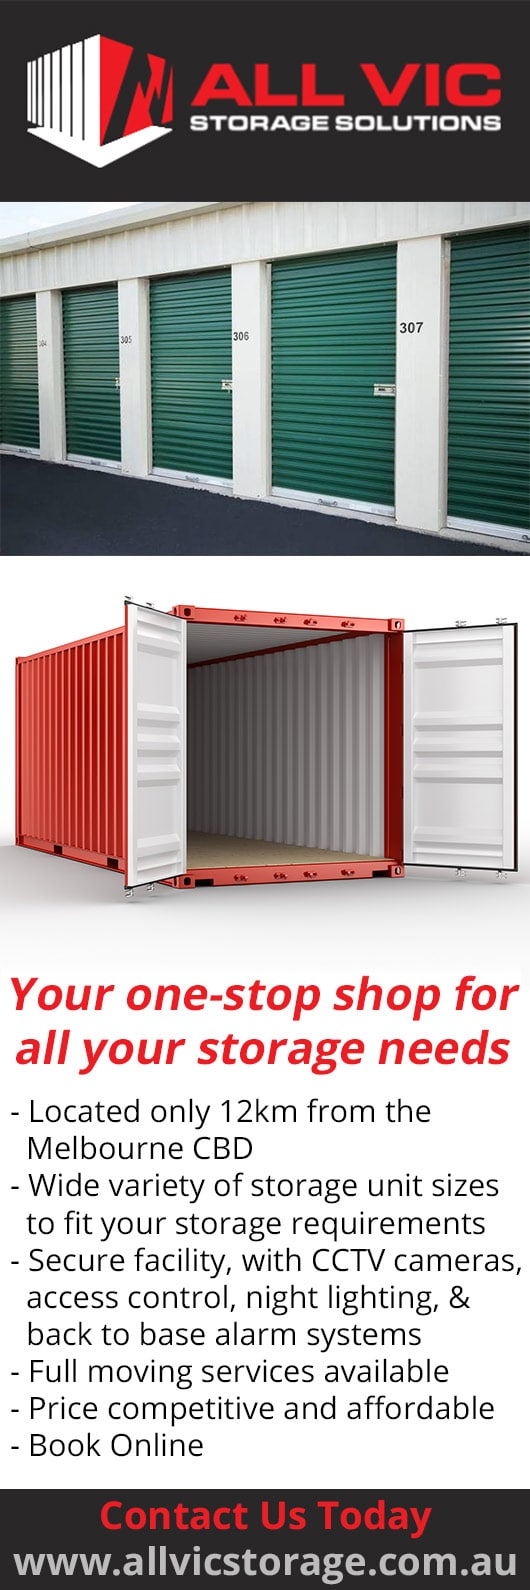 All Vic Storage Solutions - Storage Solutions - 525